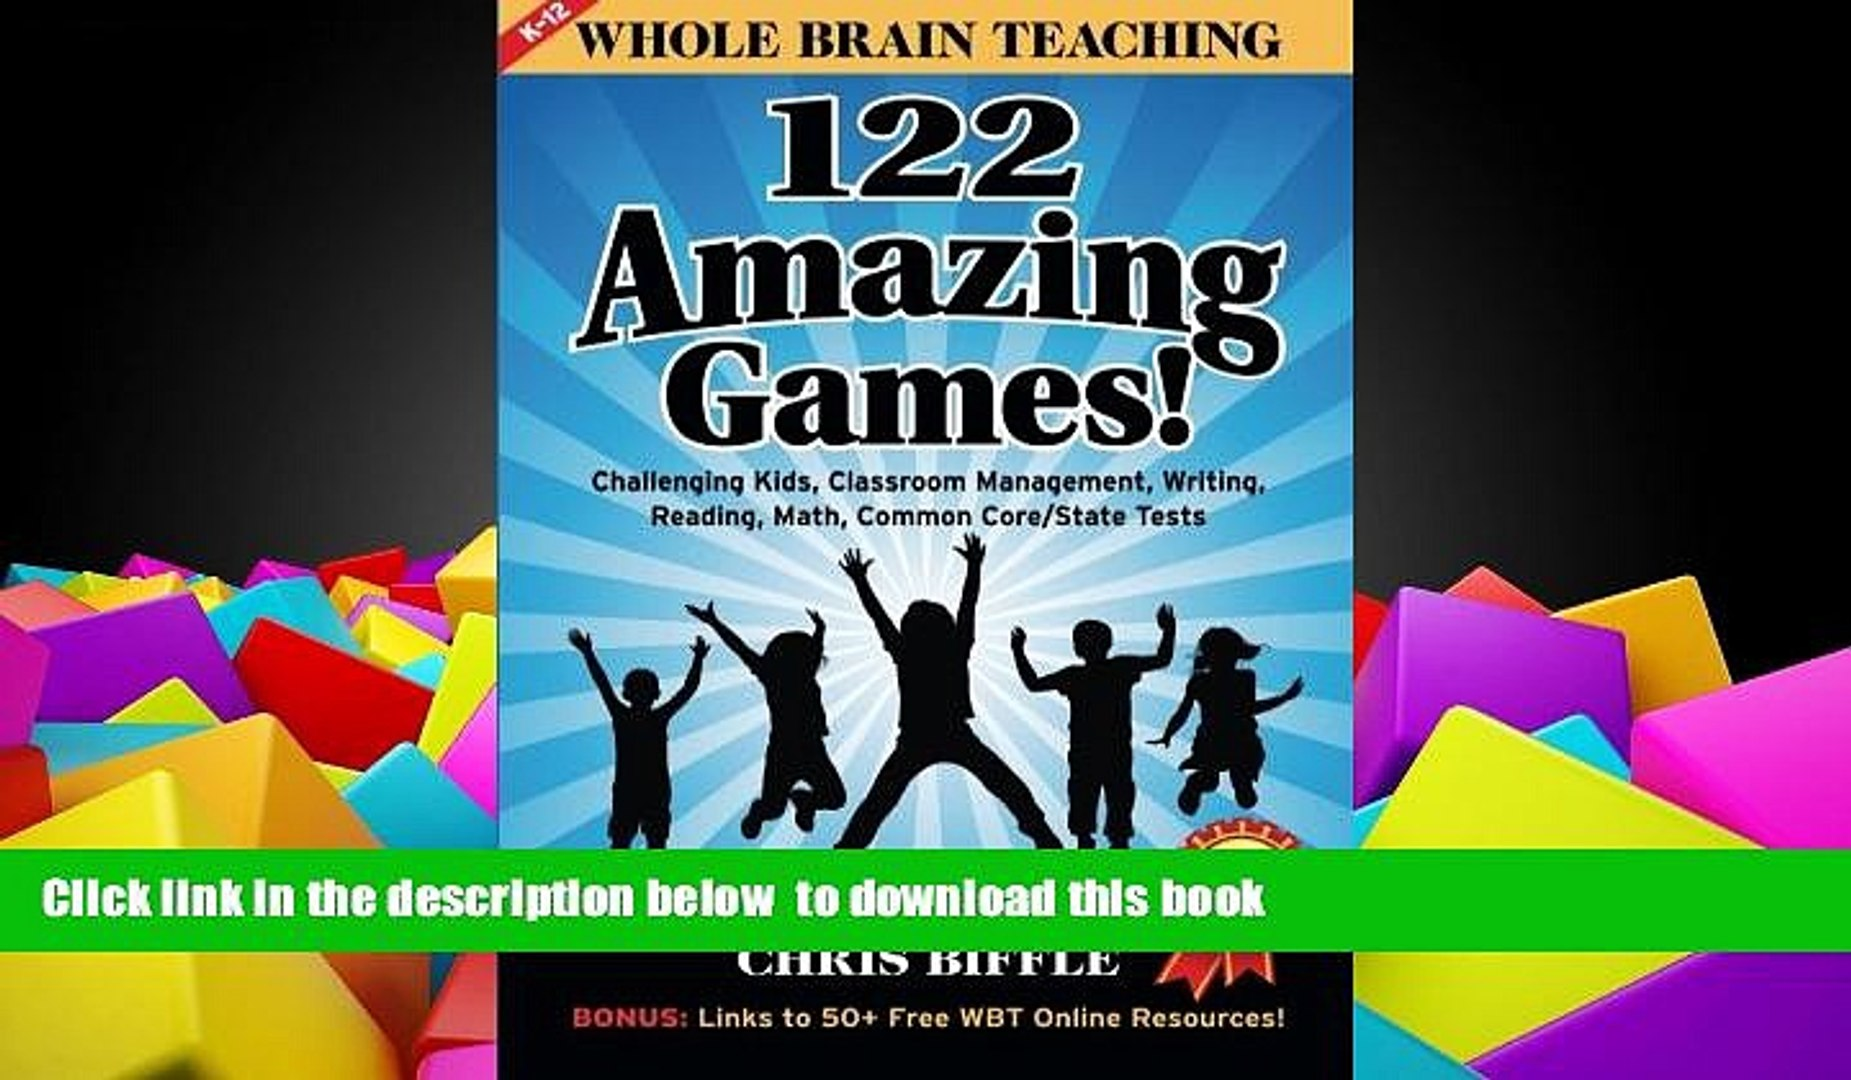 PDF [FREE] DOWNLOAD Whole Brain Teaching: 122 Amazing Games!: Challenging  kids, classroom